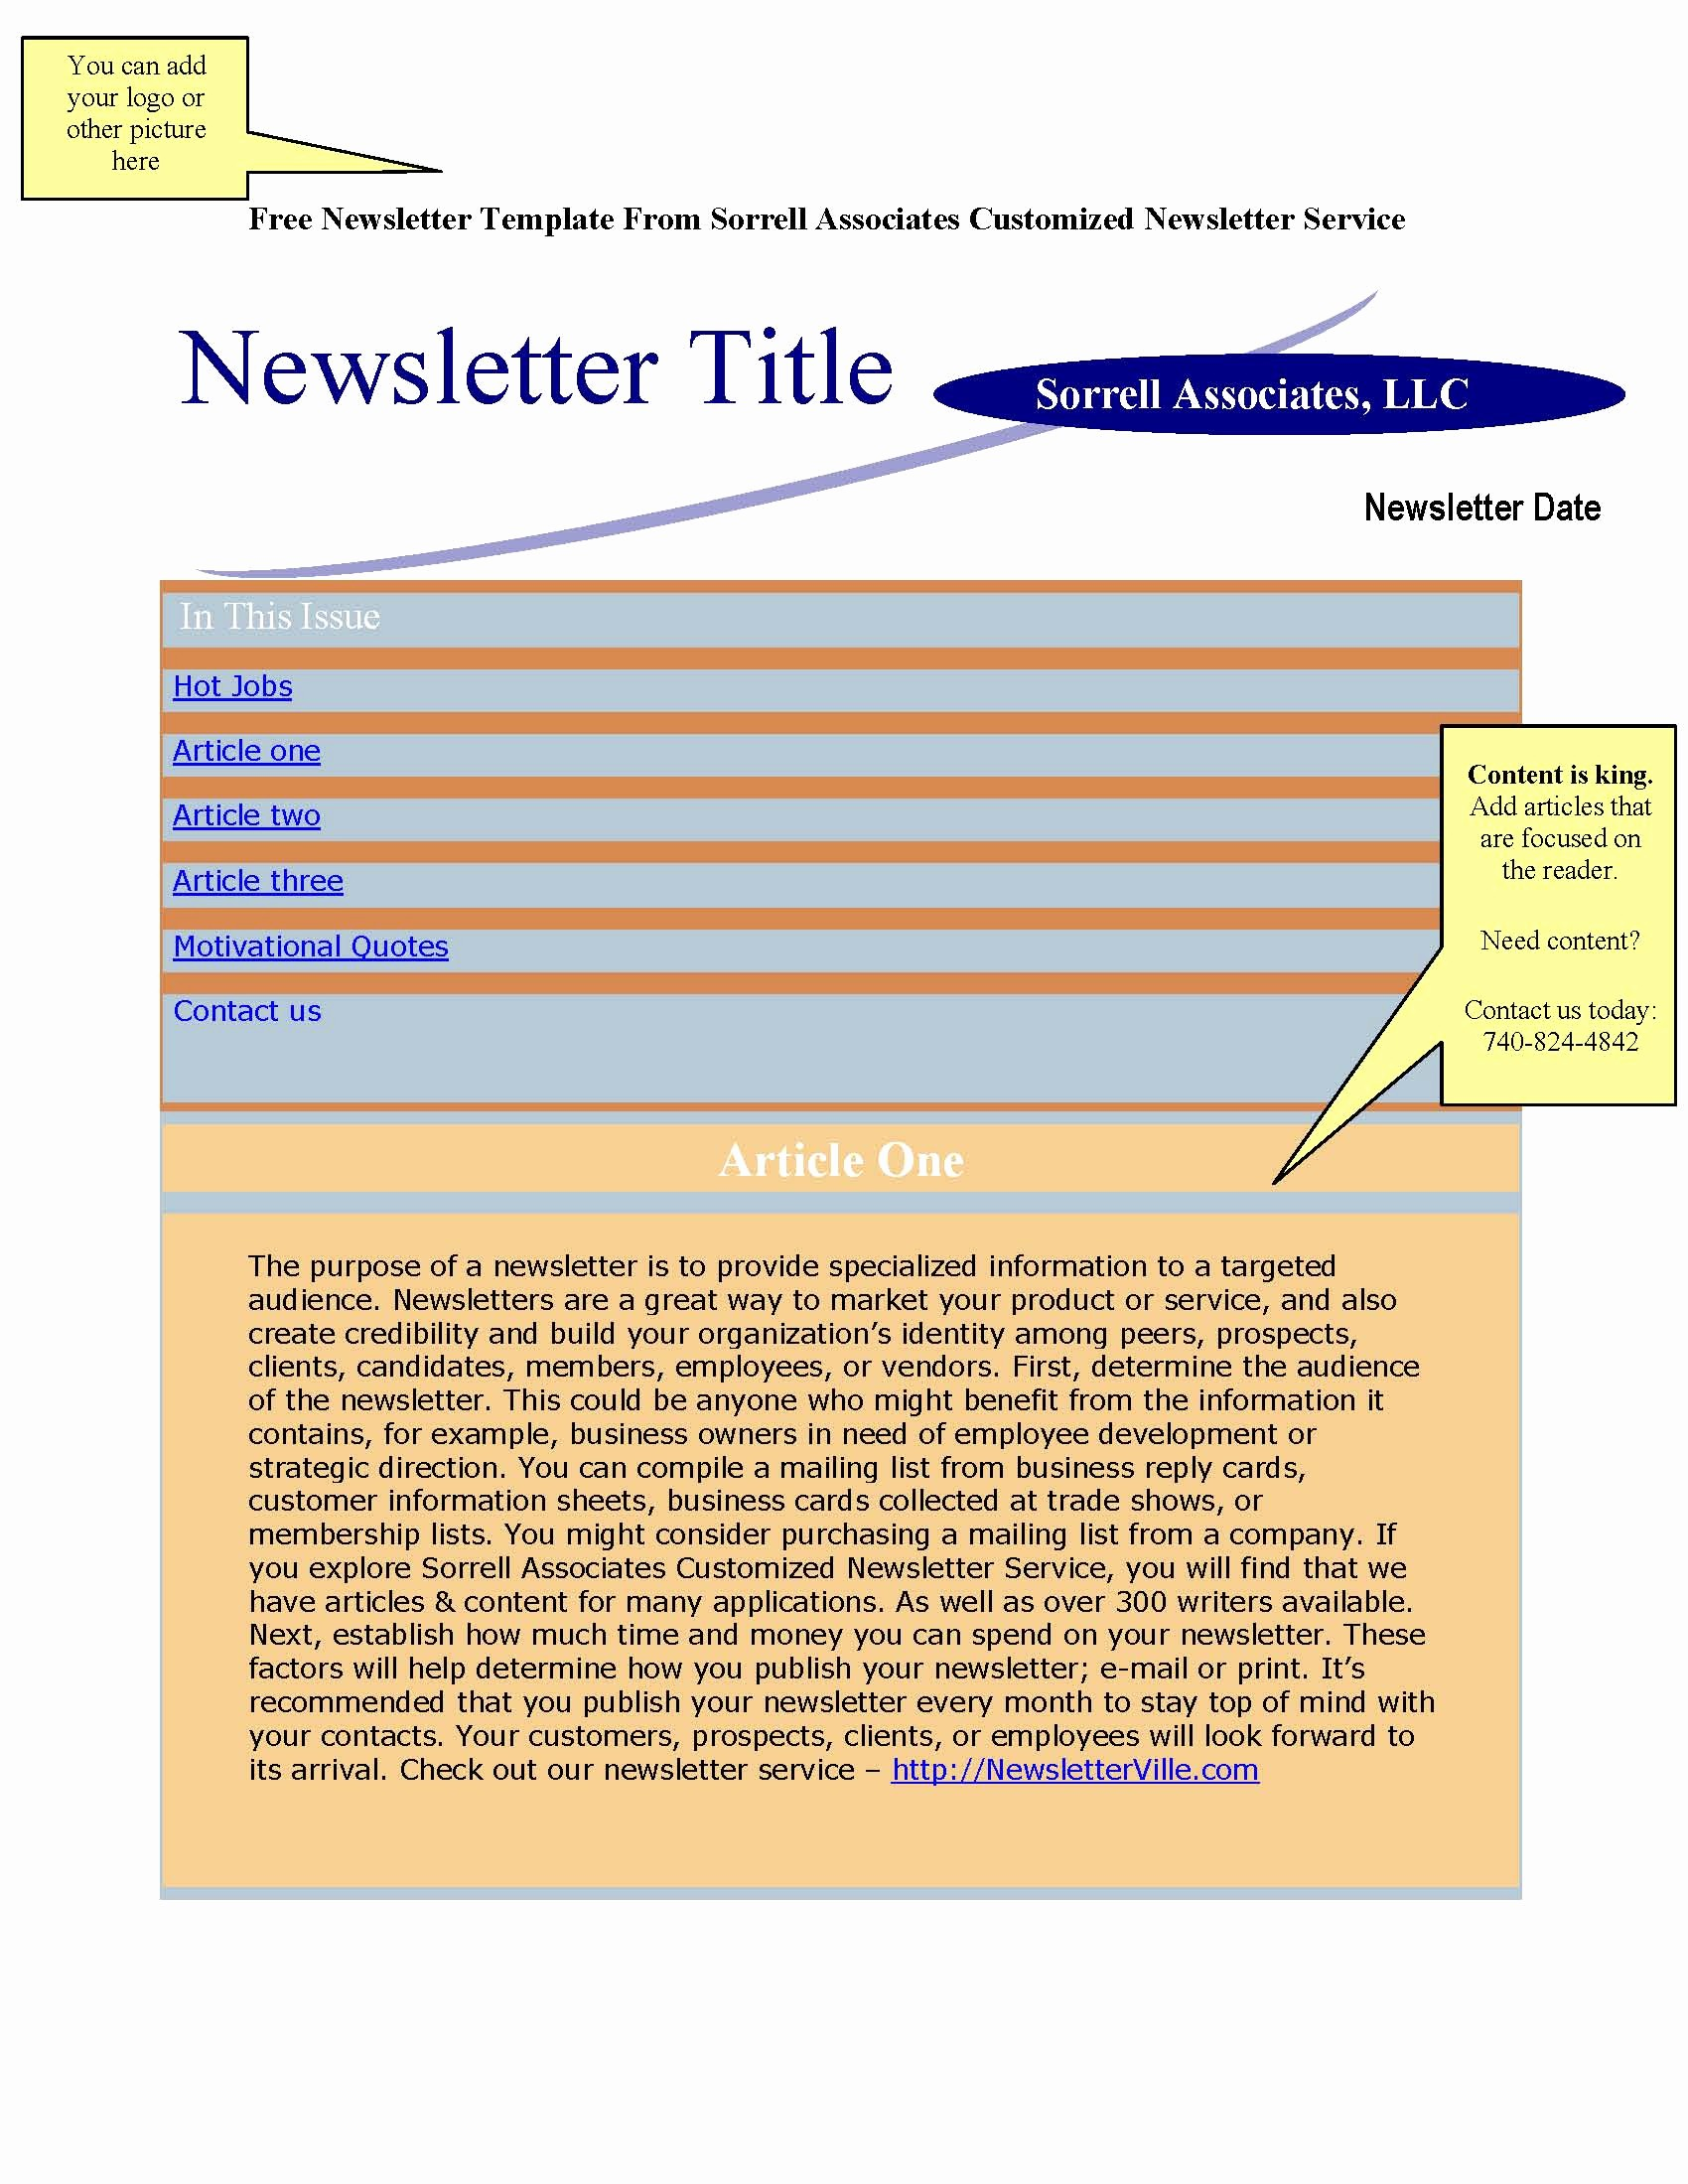 News Letter Templates In Word Lovely Newsletter Templates Free Word Bamboodownunder